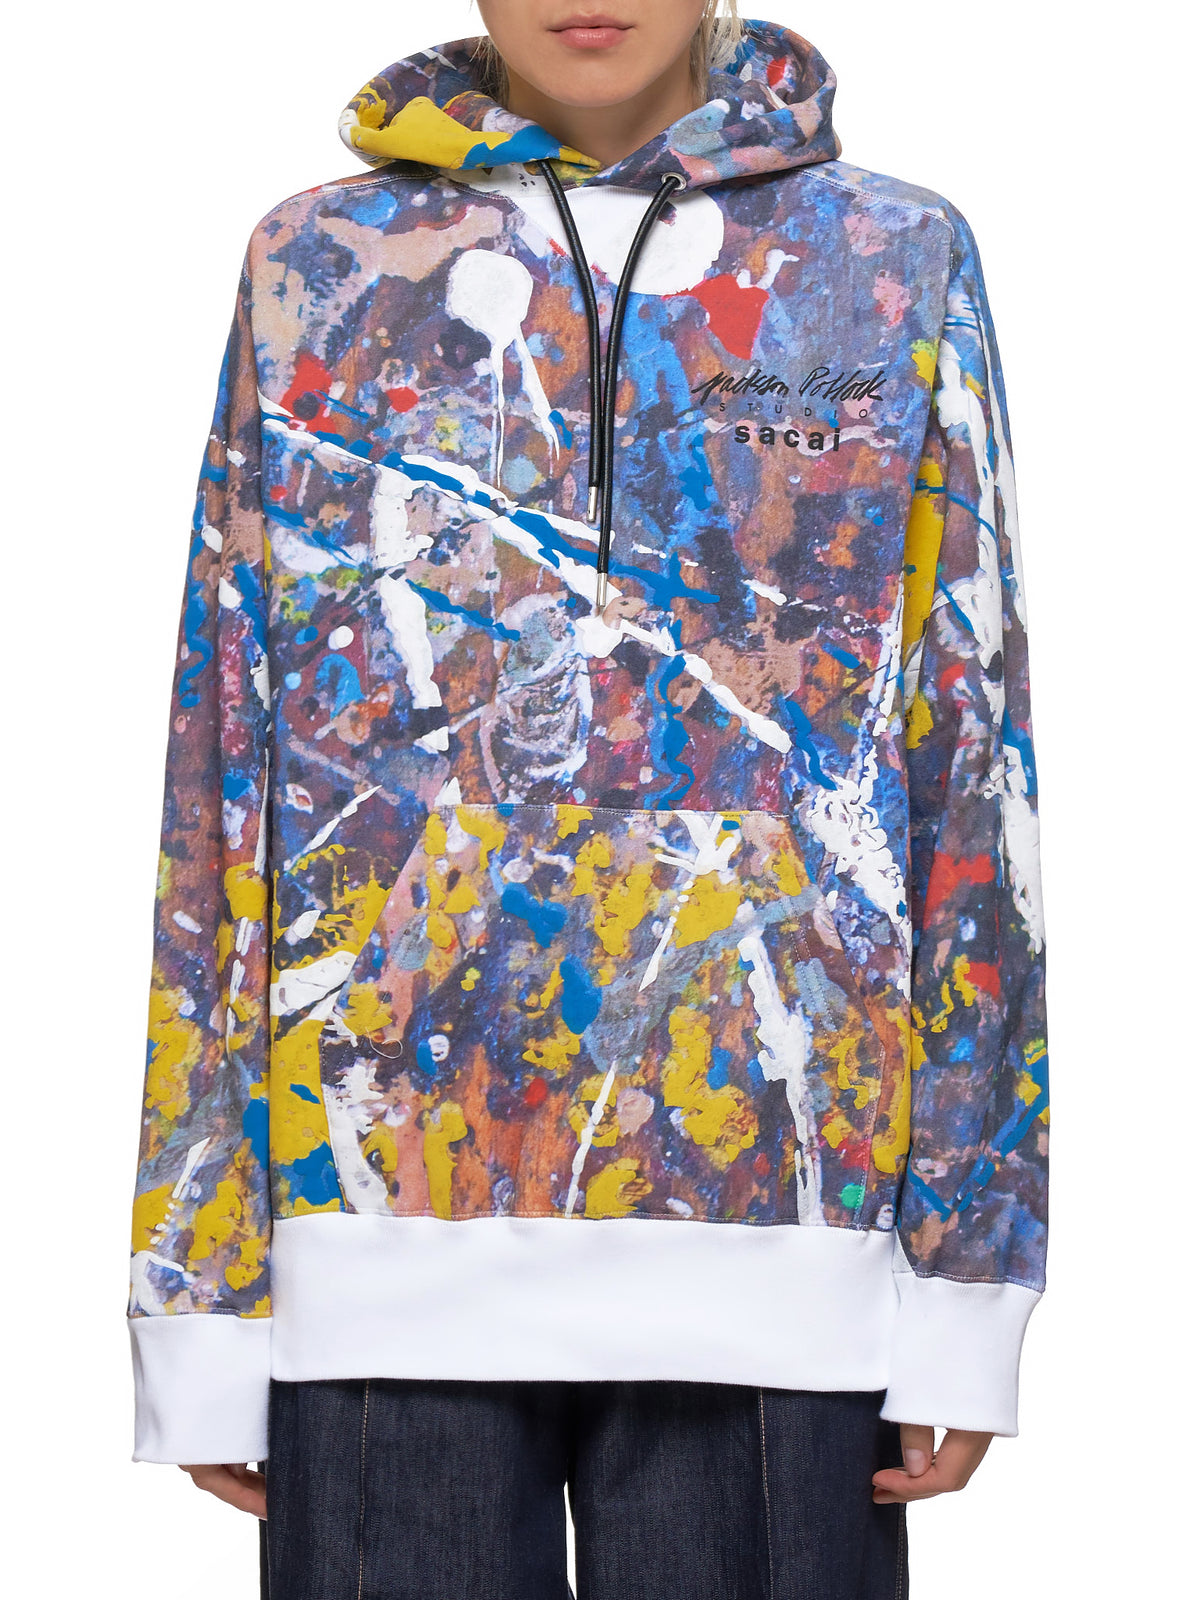 Splattered Paint Hoodie (19-0043S-WHITE-MINT)